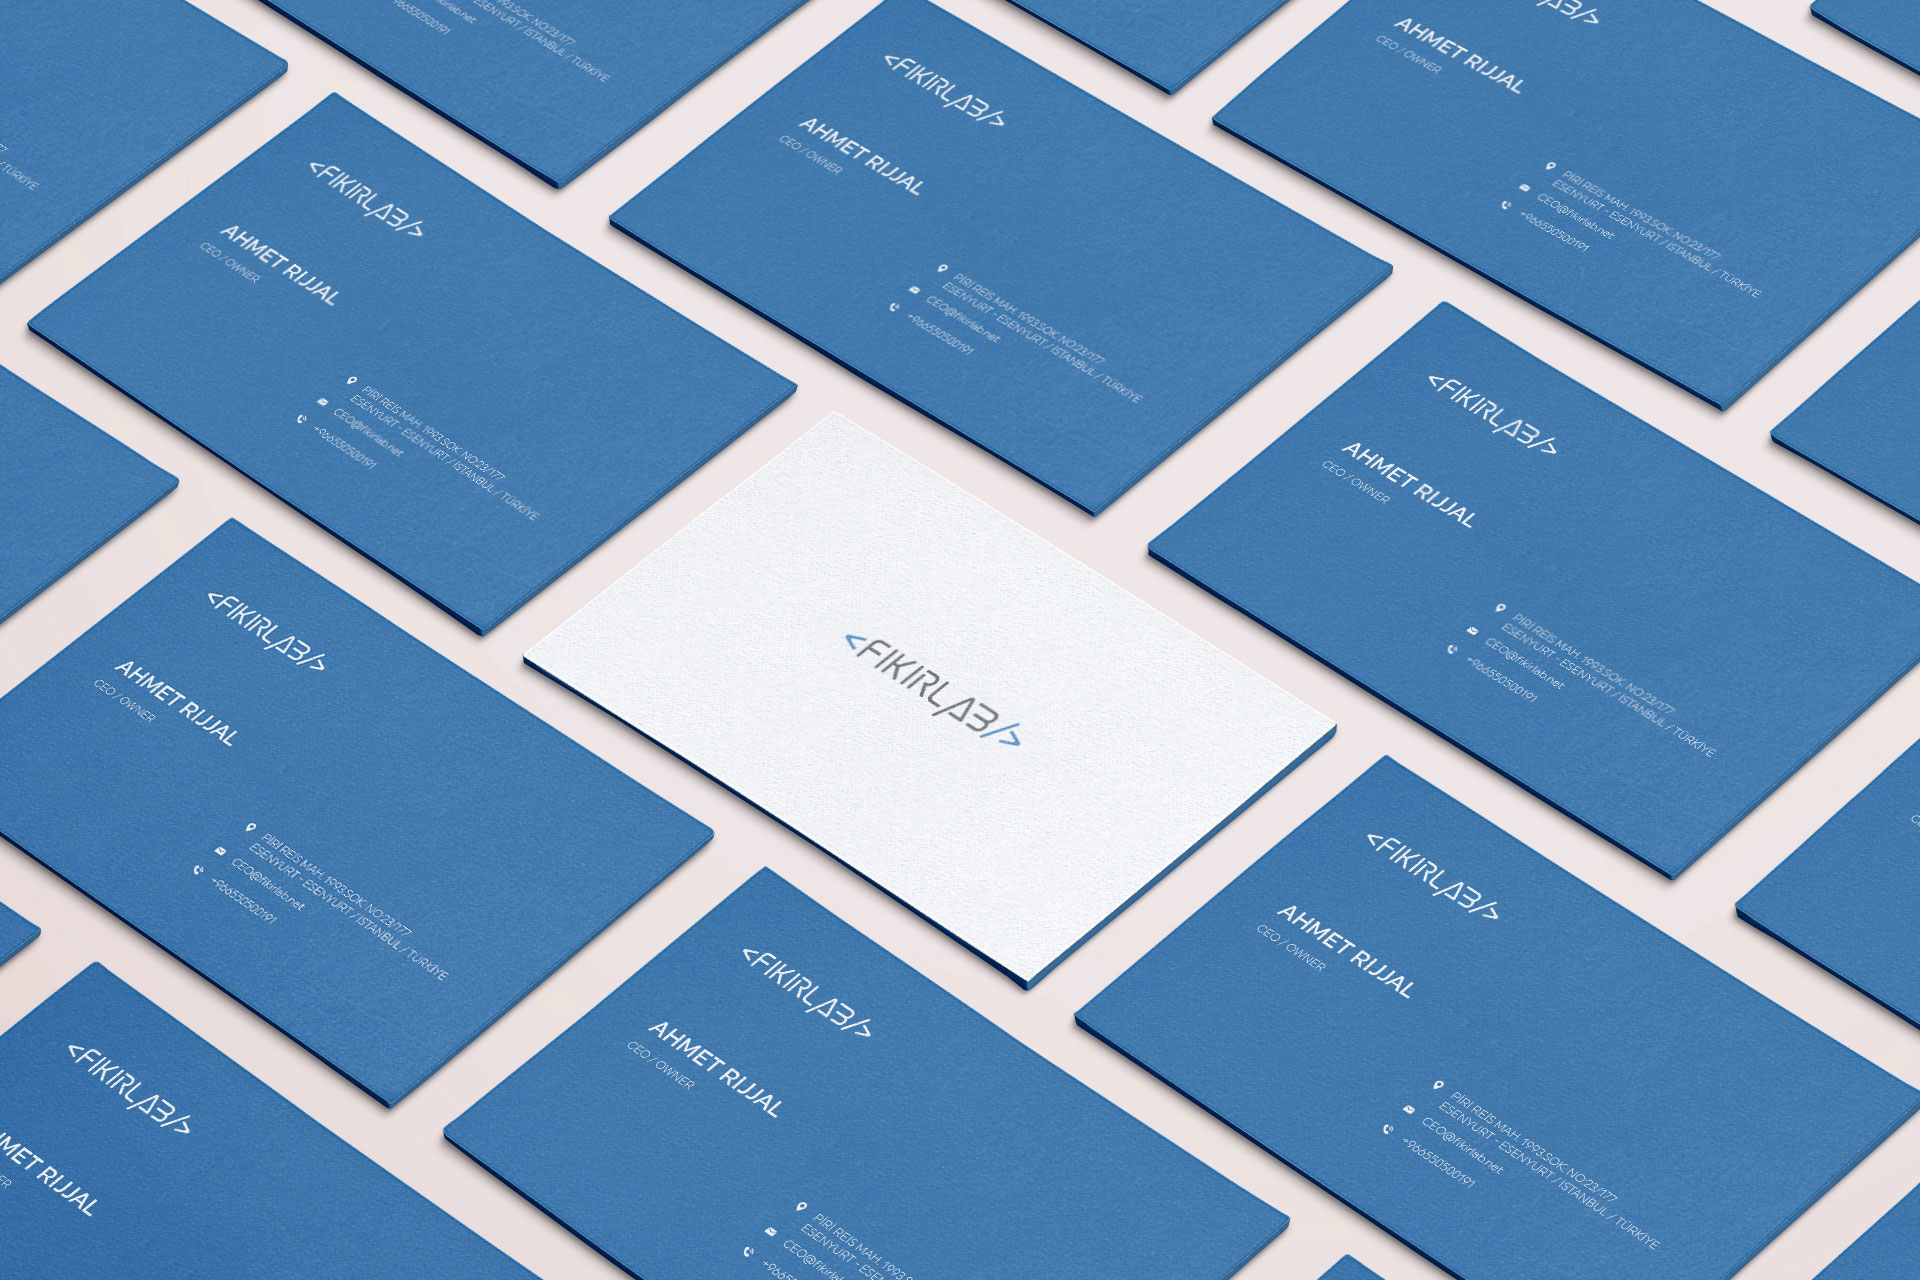 Vertical Fikirlab business cards Blue & White stationery mockup ideas| Custom logo design| Get Solutions| Affordable